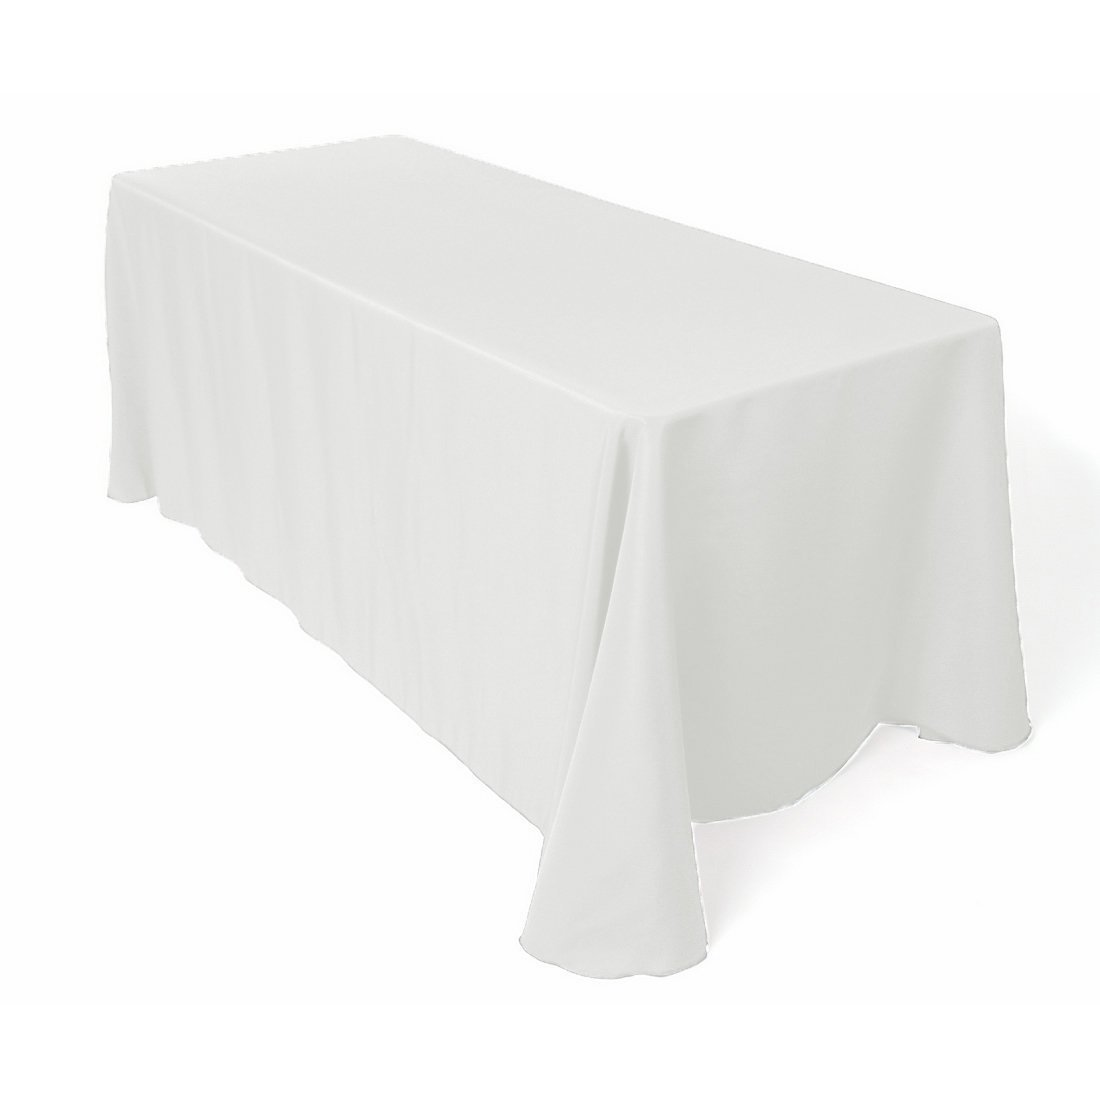 Gee Di Moda Rectangle Tablecloth - 90 x 132'' Inch - White Rectangular Table Cloth for 6 Foot Table in Washable Polyester - Great for Buffet Table, Parties, Holiday Dinner, Wedding & More by Gee Di Moda